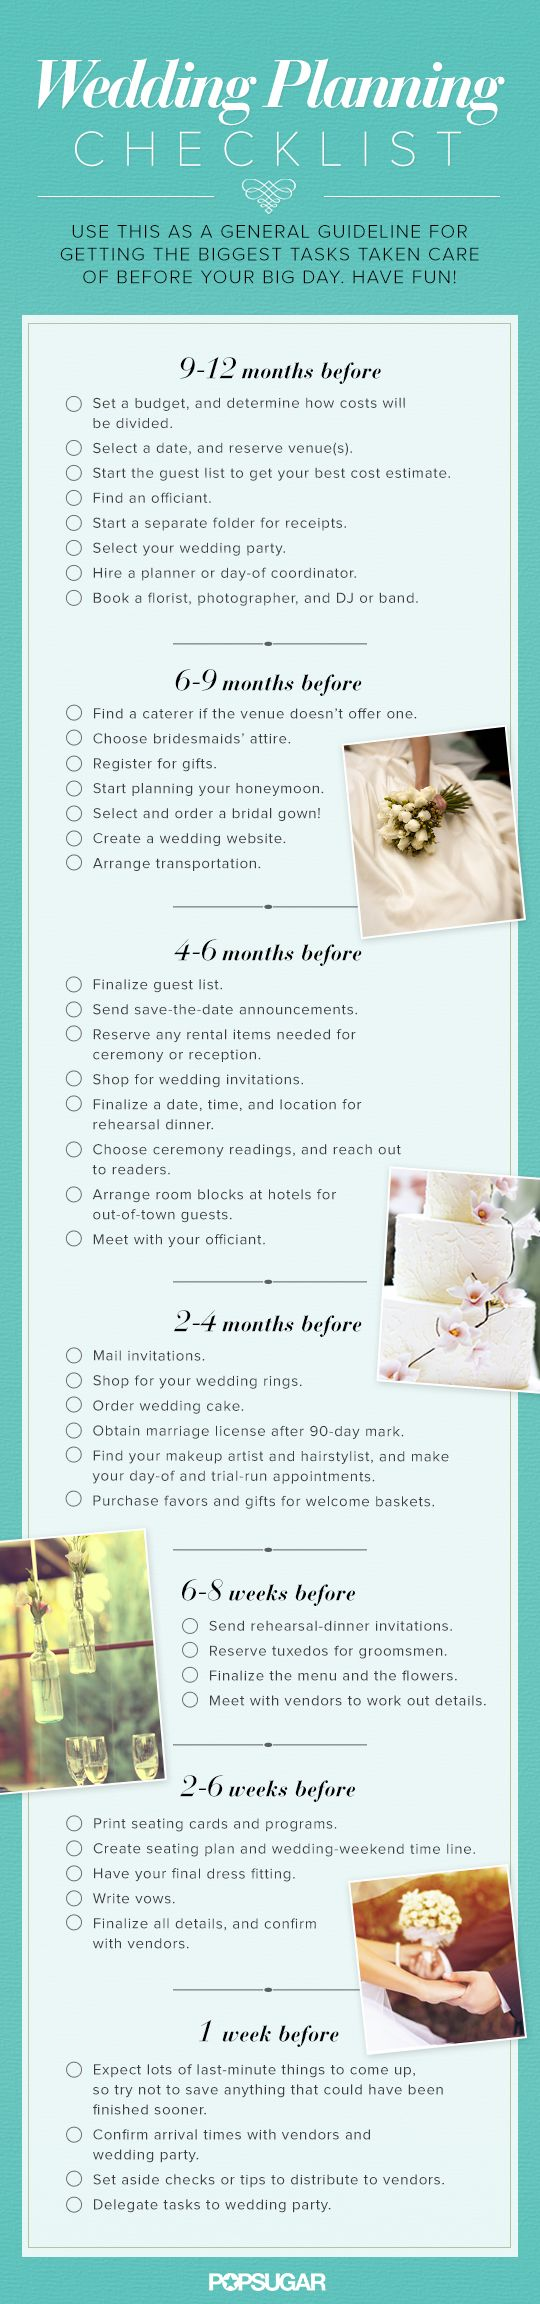 the Ultimate Wedding Planning Checklist!